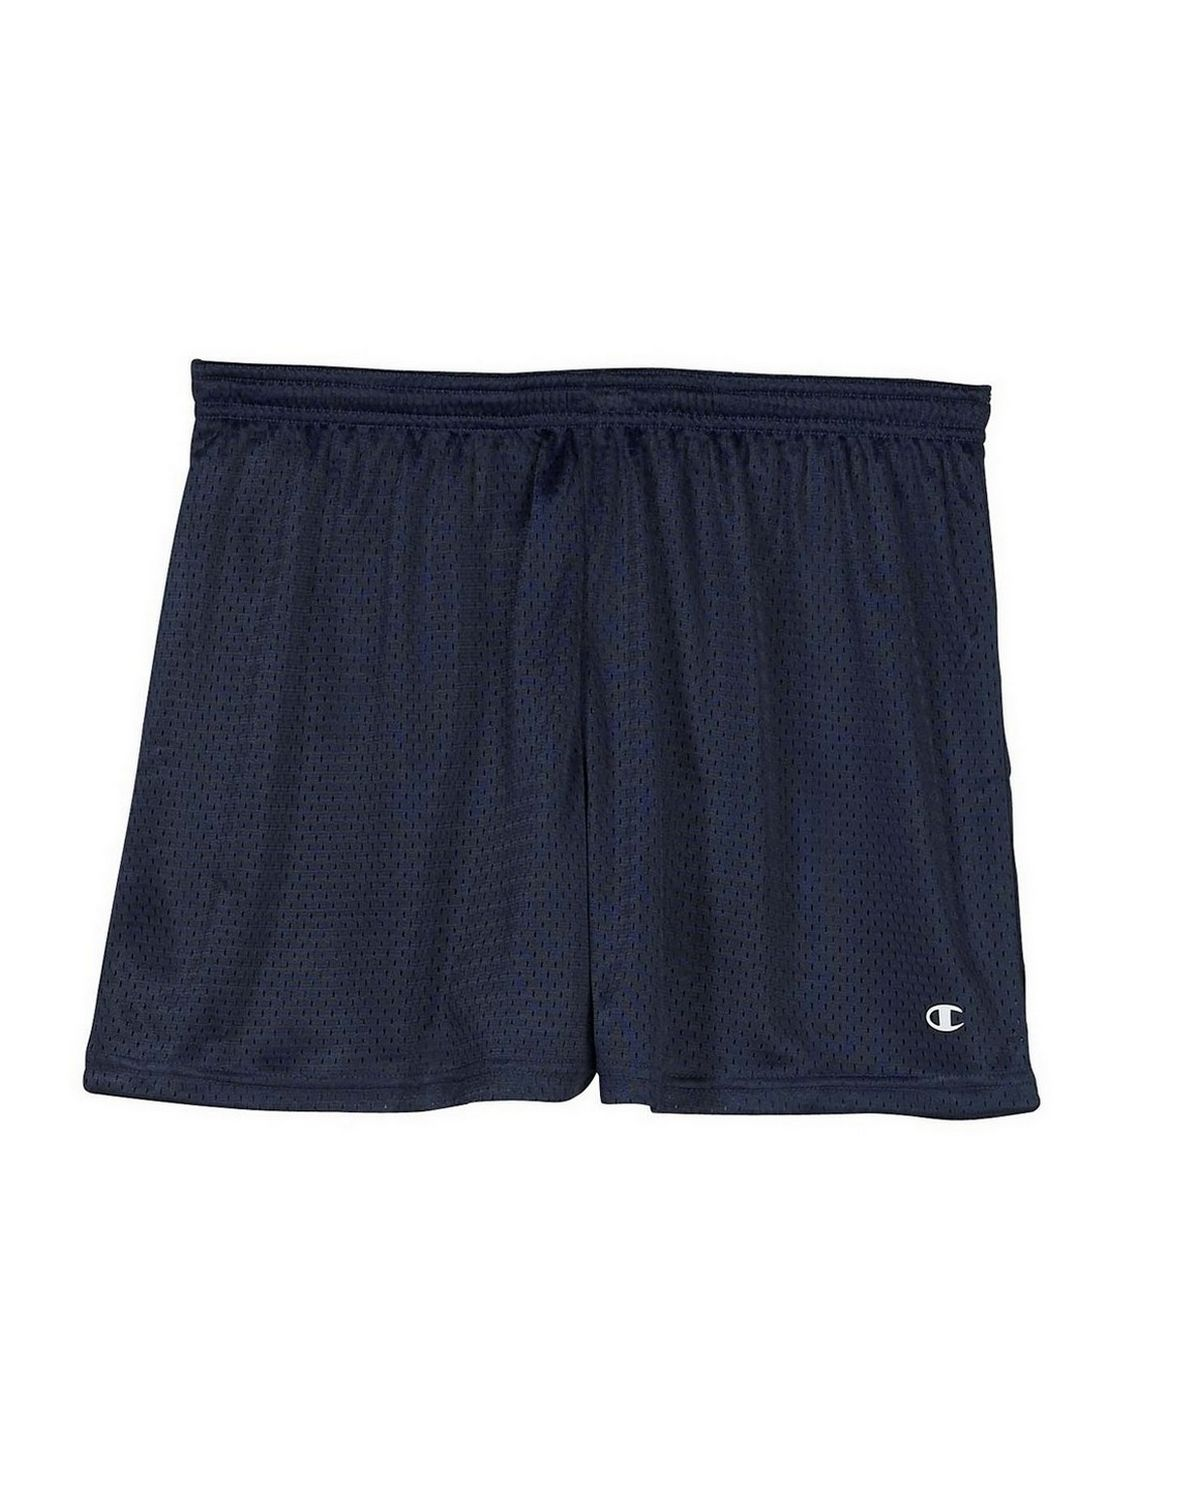 Champion 3393 Active Mesh Shorts - Navy - S 3393